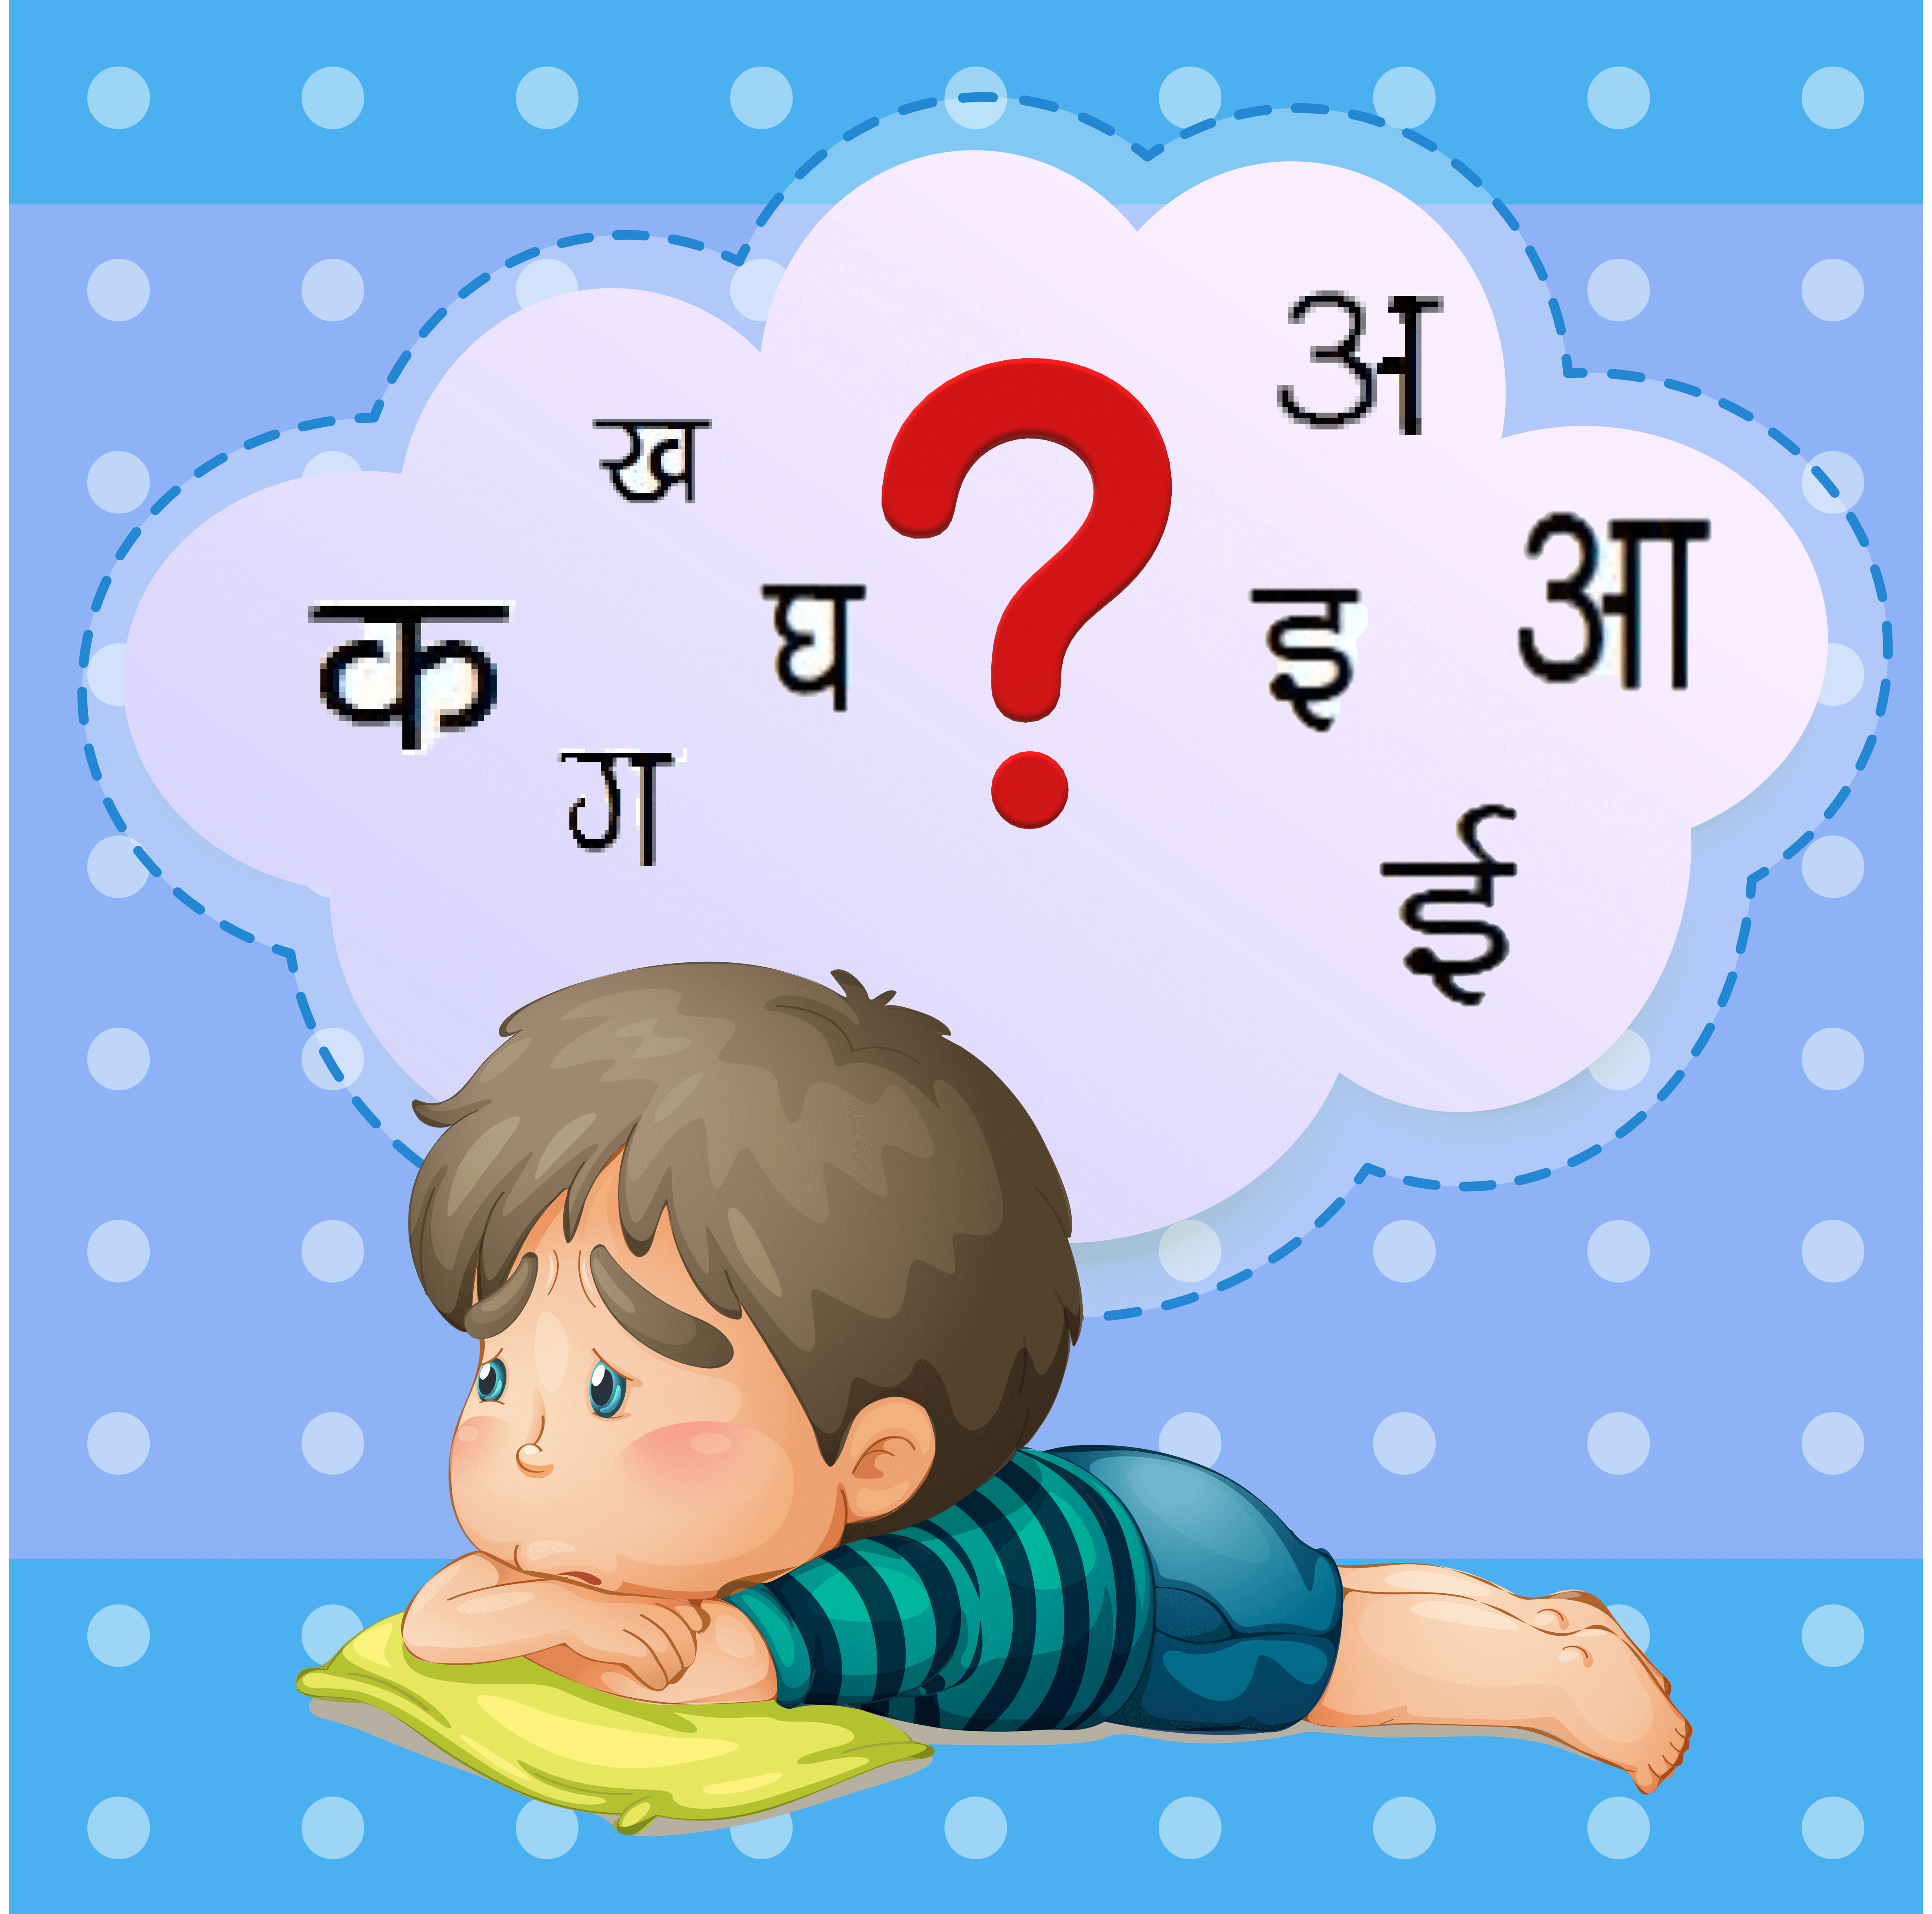 Kids' Hindi learning with fun – How many letters in Hindi Varnamala are!